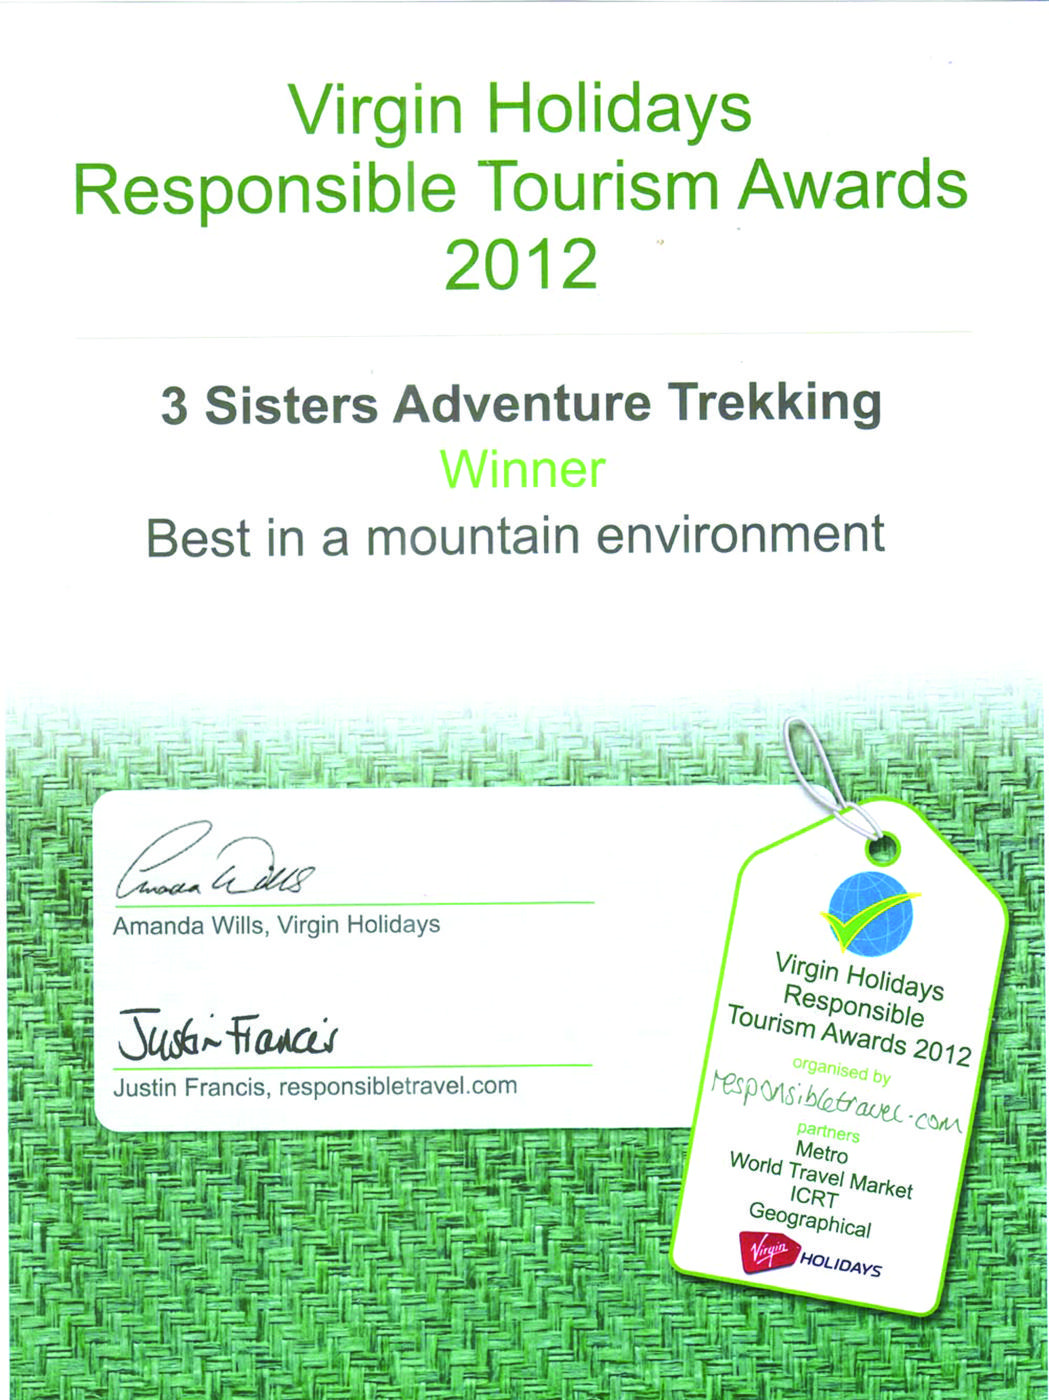 Virgin holidays responsible tourism  winner 2012